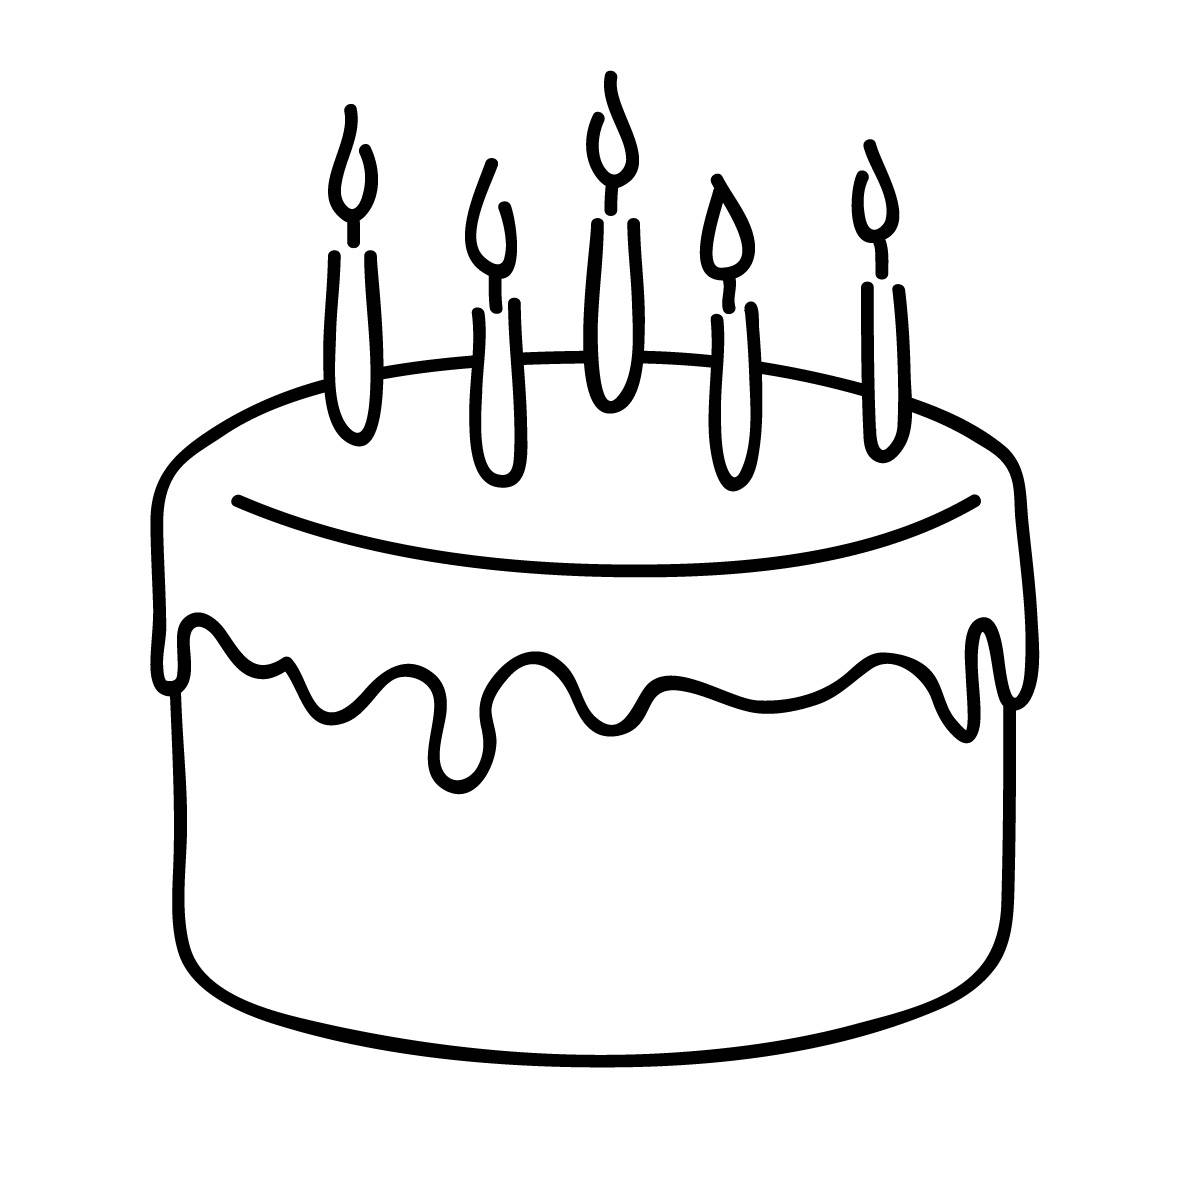 birthday cake clipart black and white cute